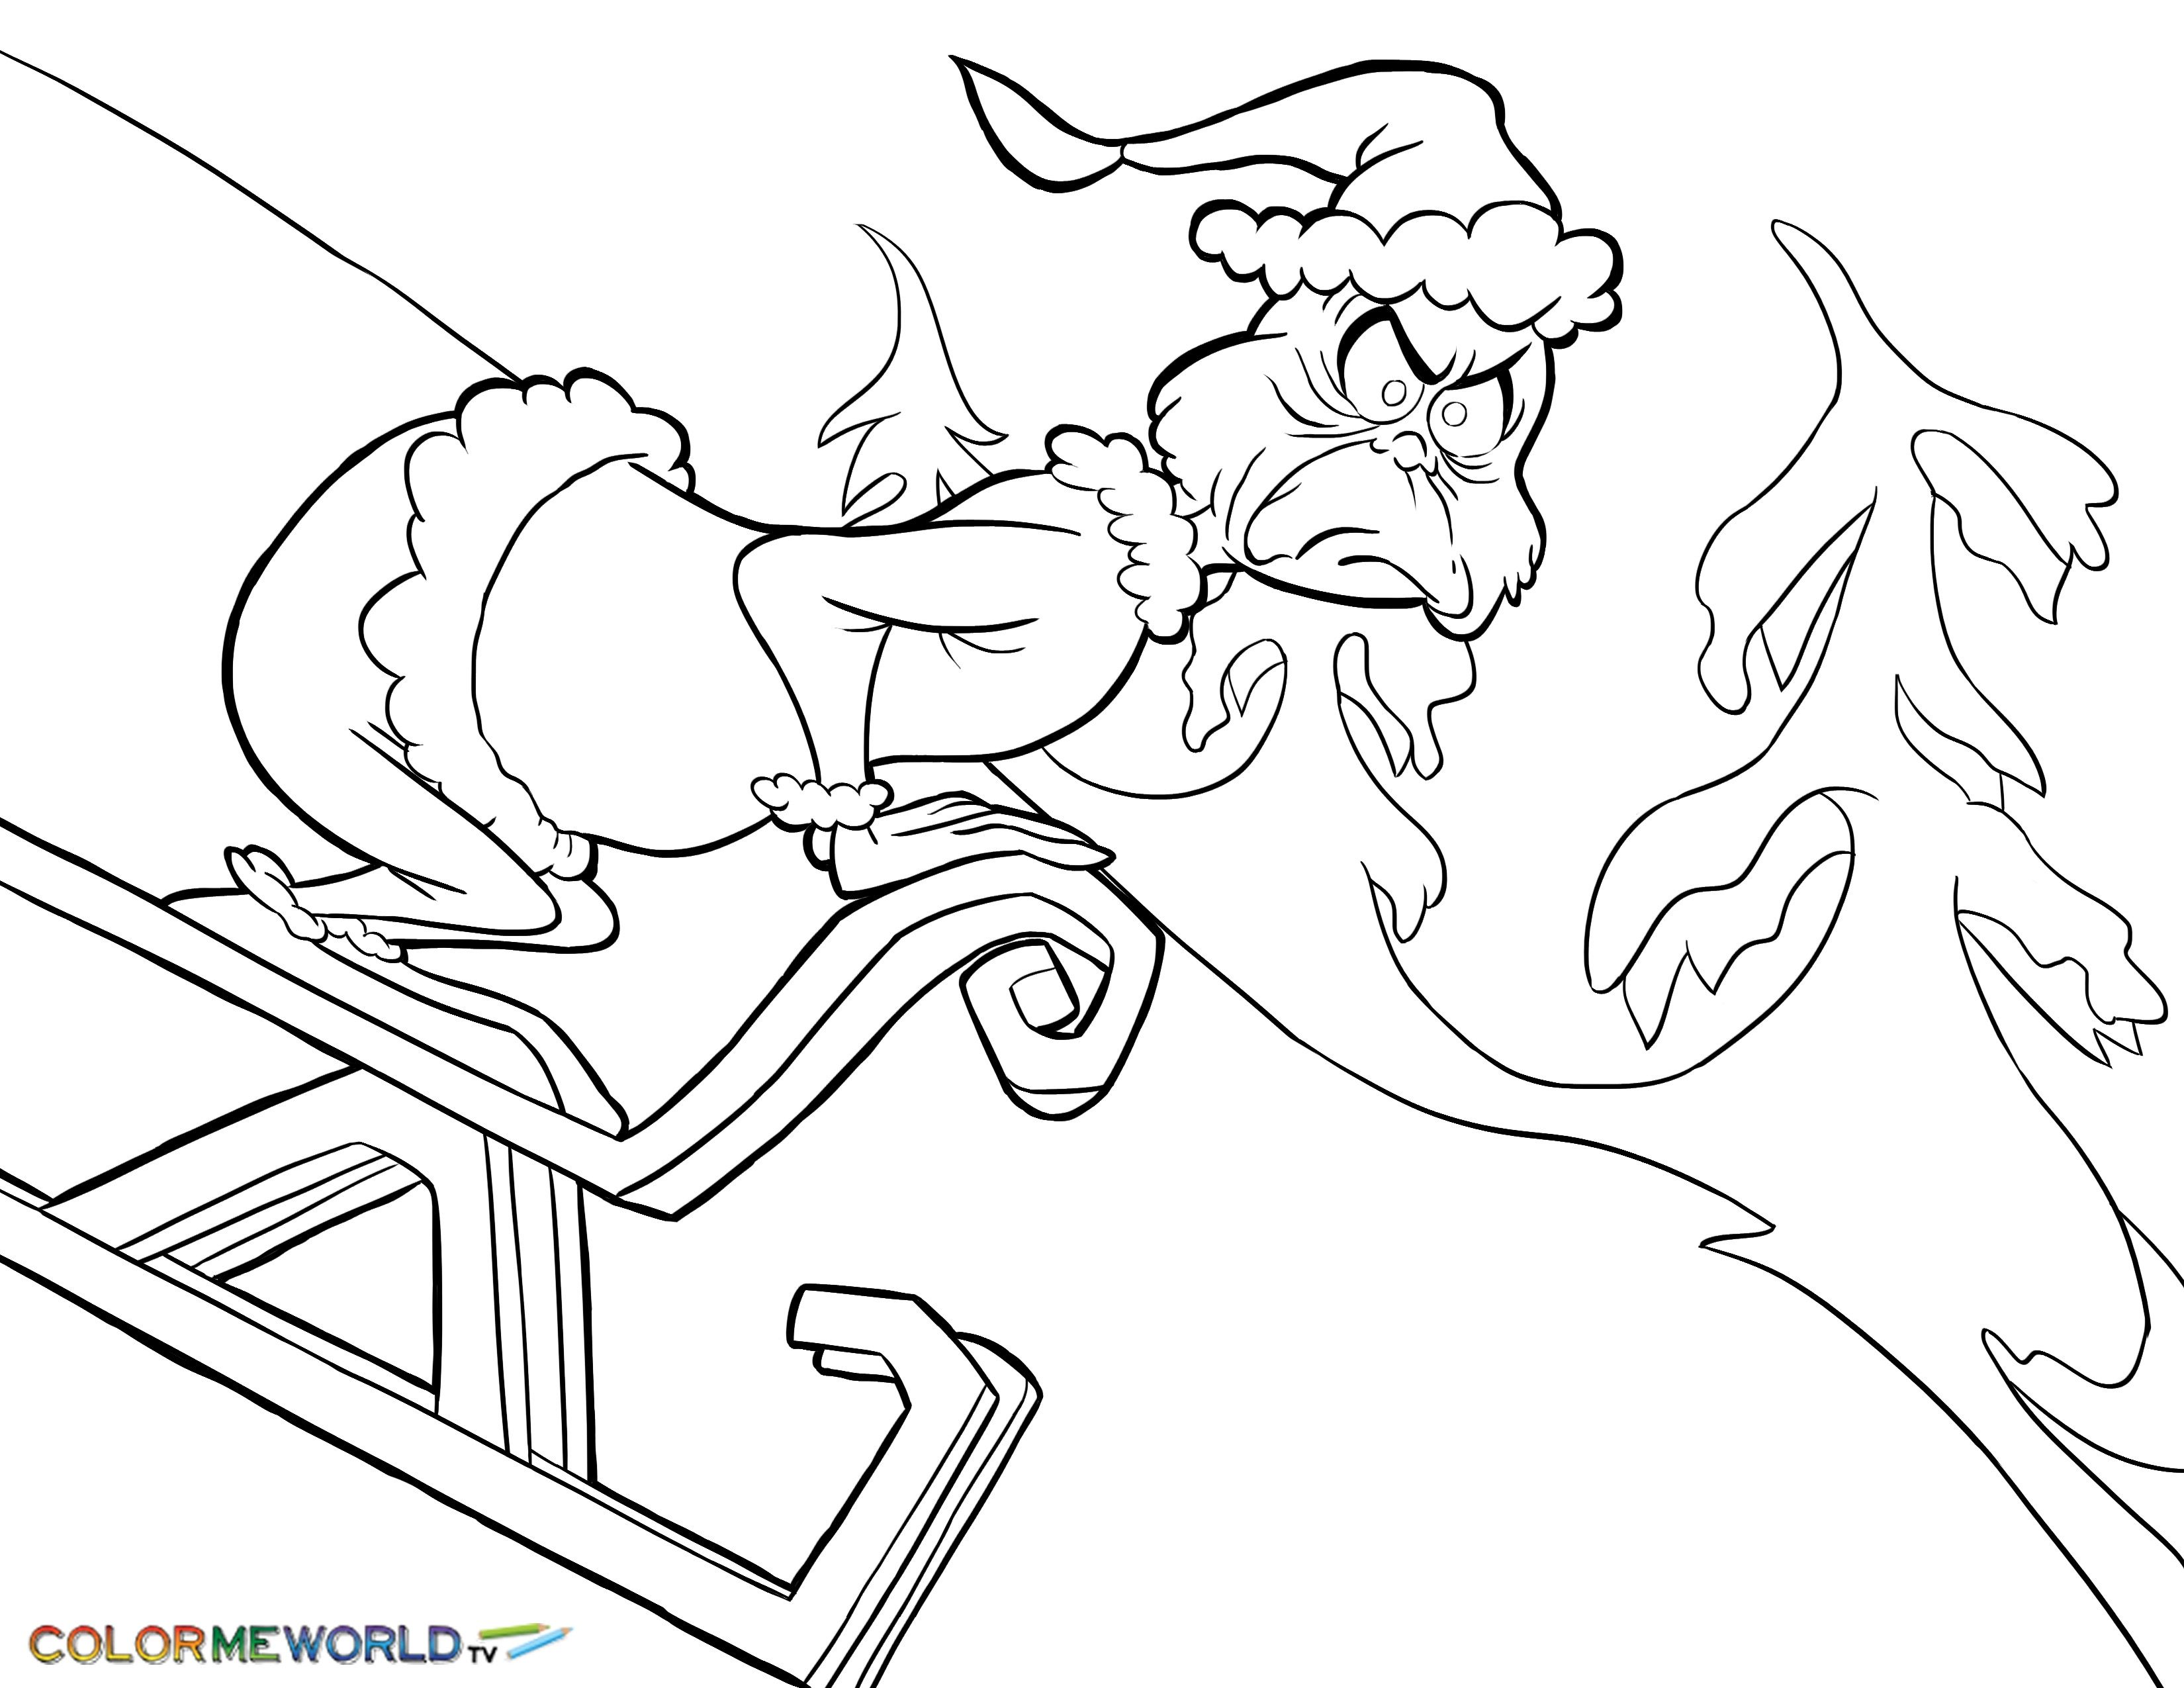 Grinch Coloring Pages The Grinch Coloring Pages Free Printable The Grinch Pdf Coloring Dibujos Para Colorear Disney Colorear Disney Dibujos Para Colorear